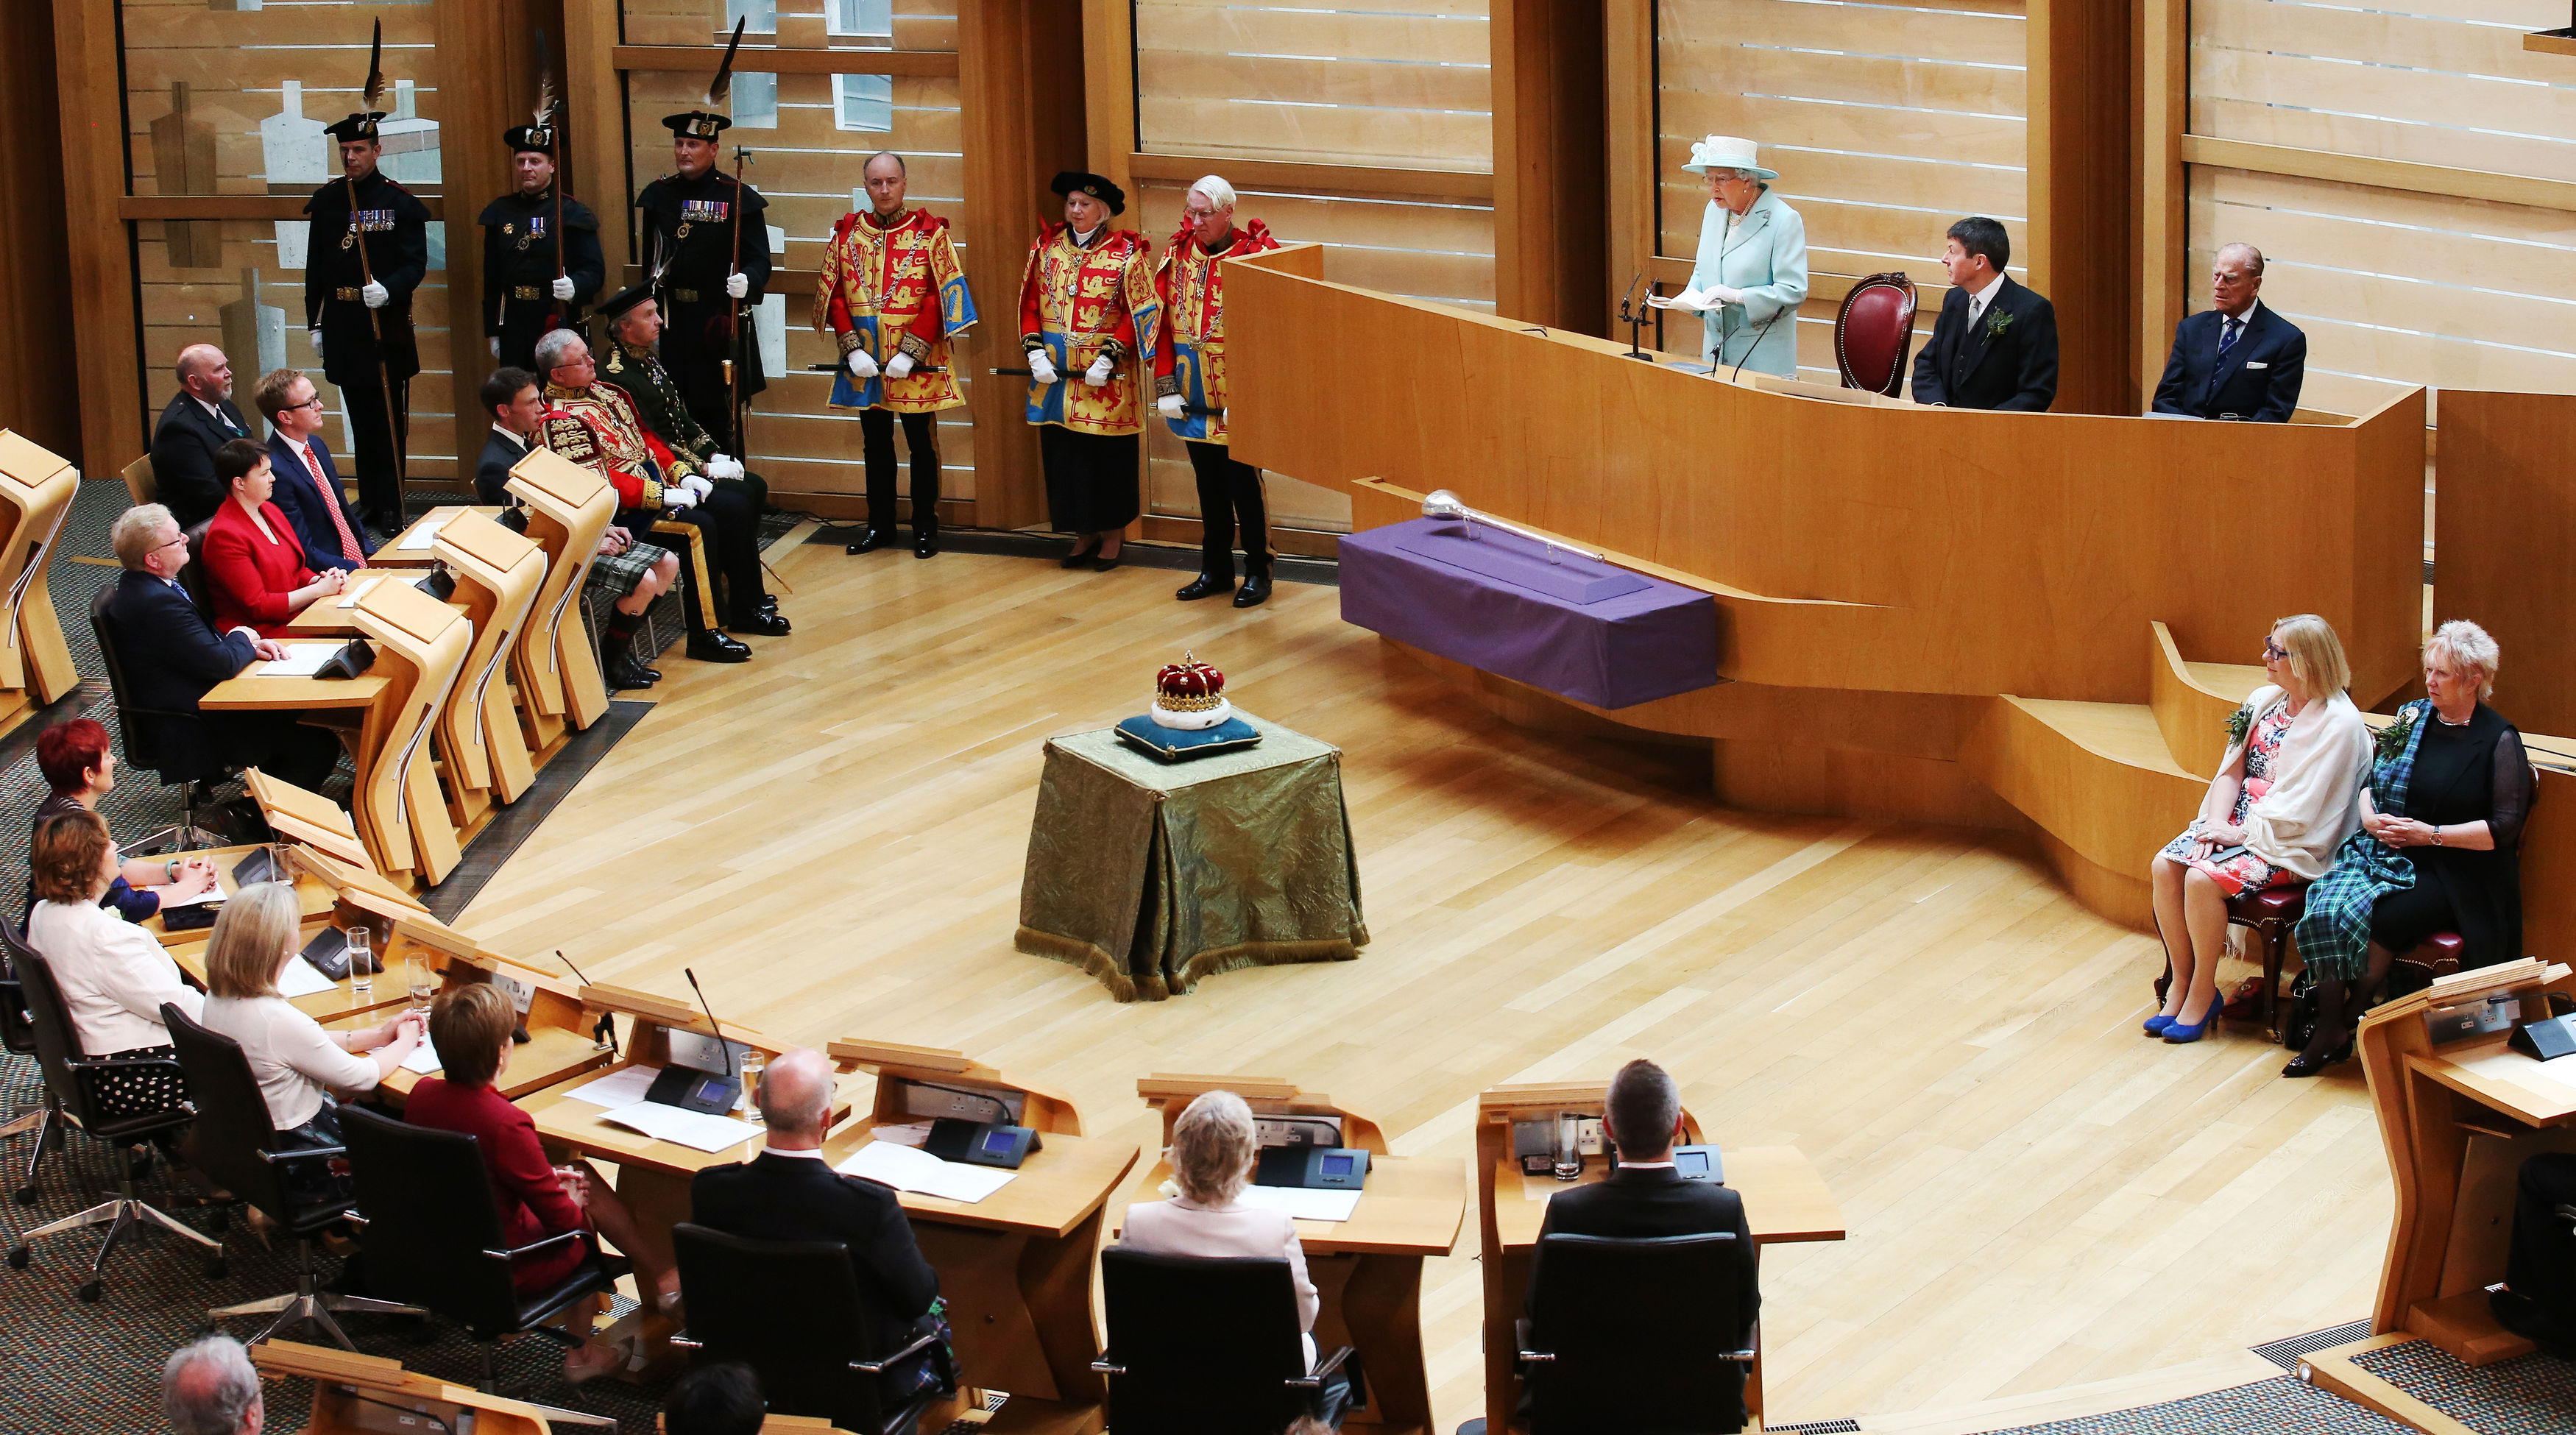 The Queen speaks as Presiding Officer Ken Macintosh and the Duke of Edinburgh listen during the opening of the fifth session of the Scottish Parliament in Edinburgh.